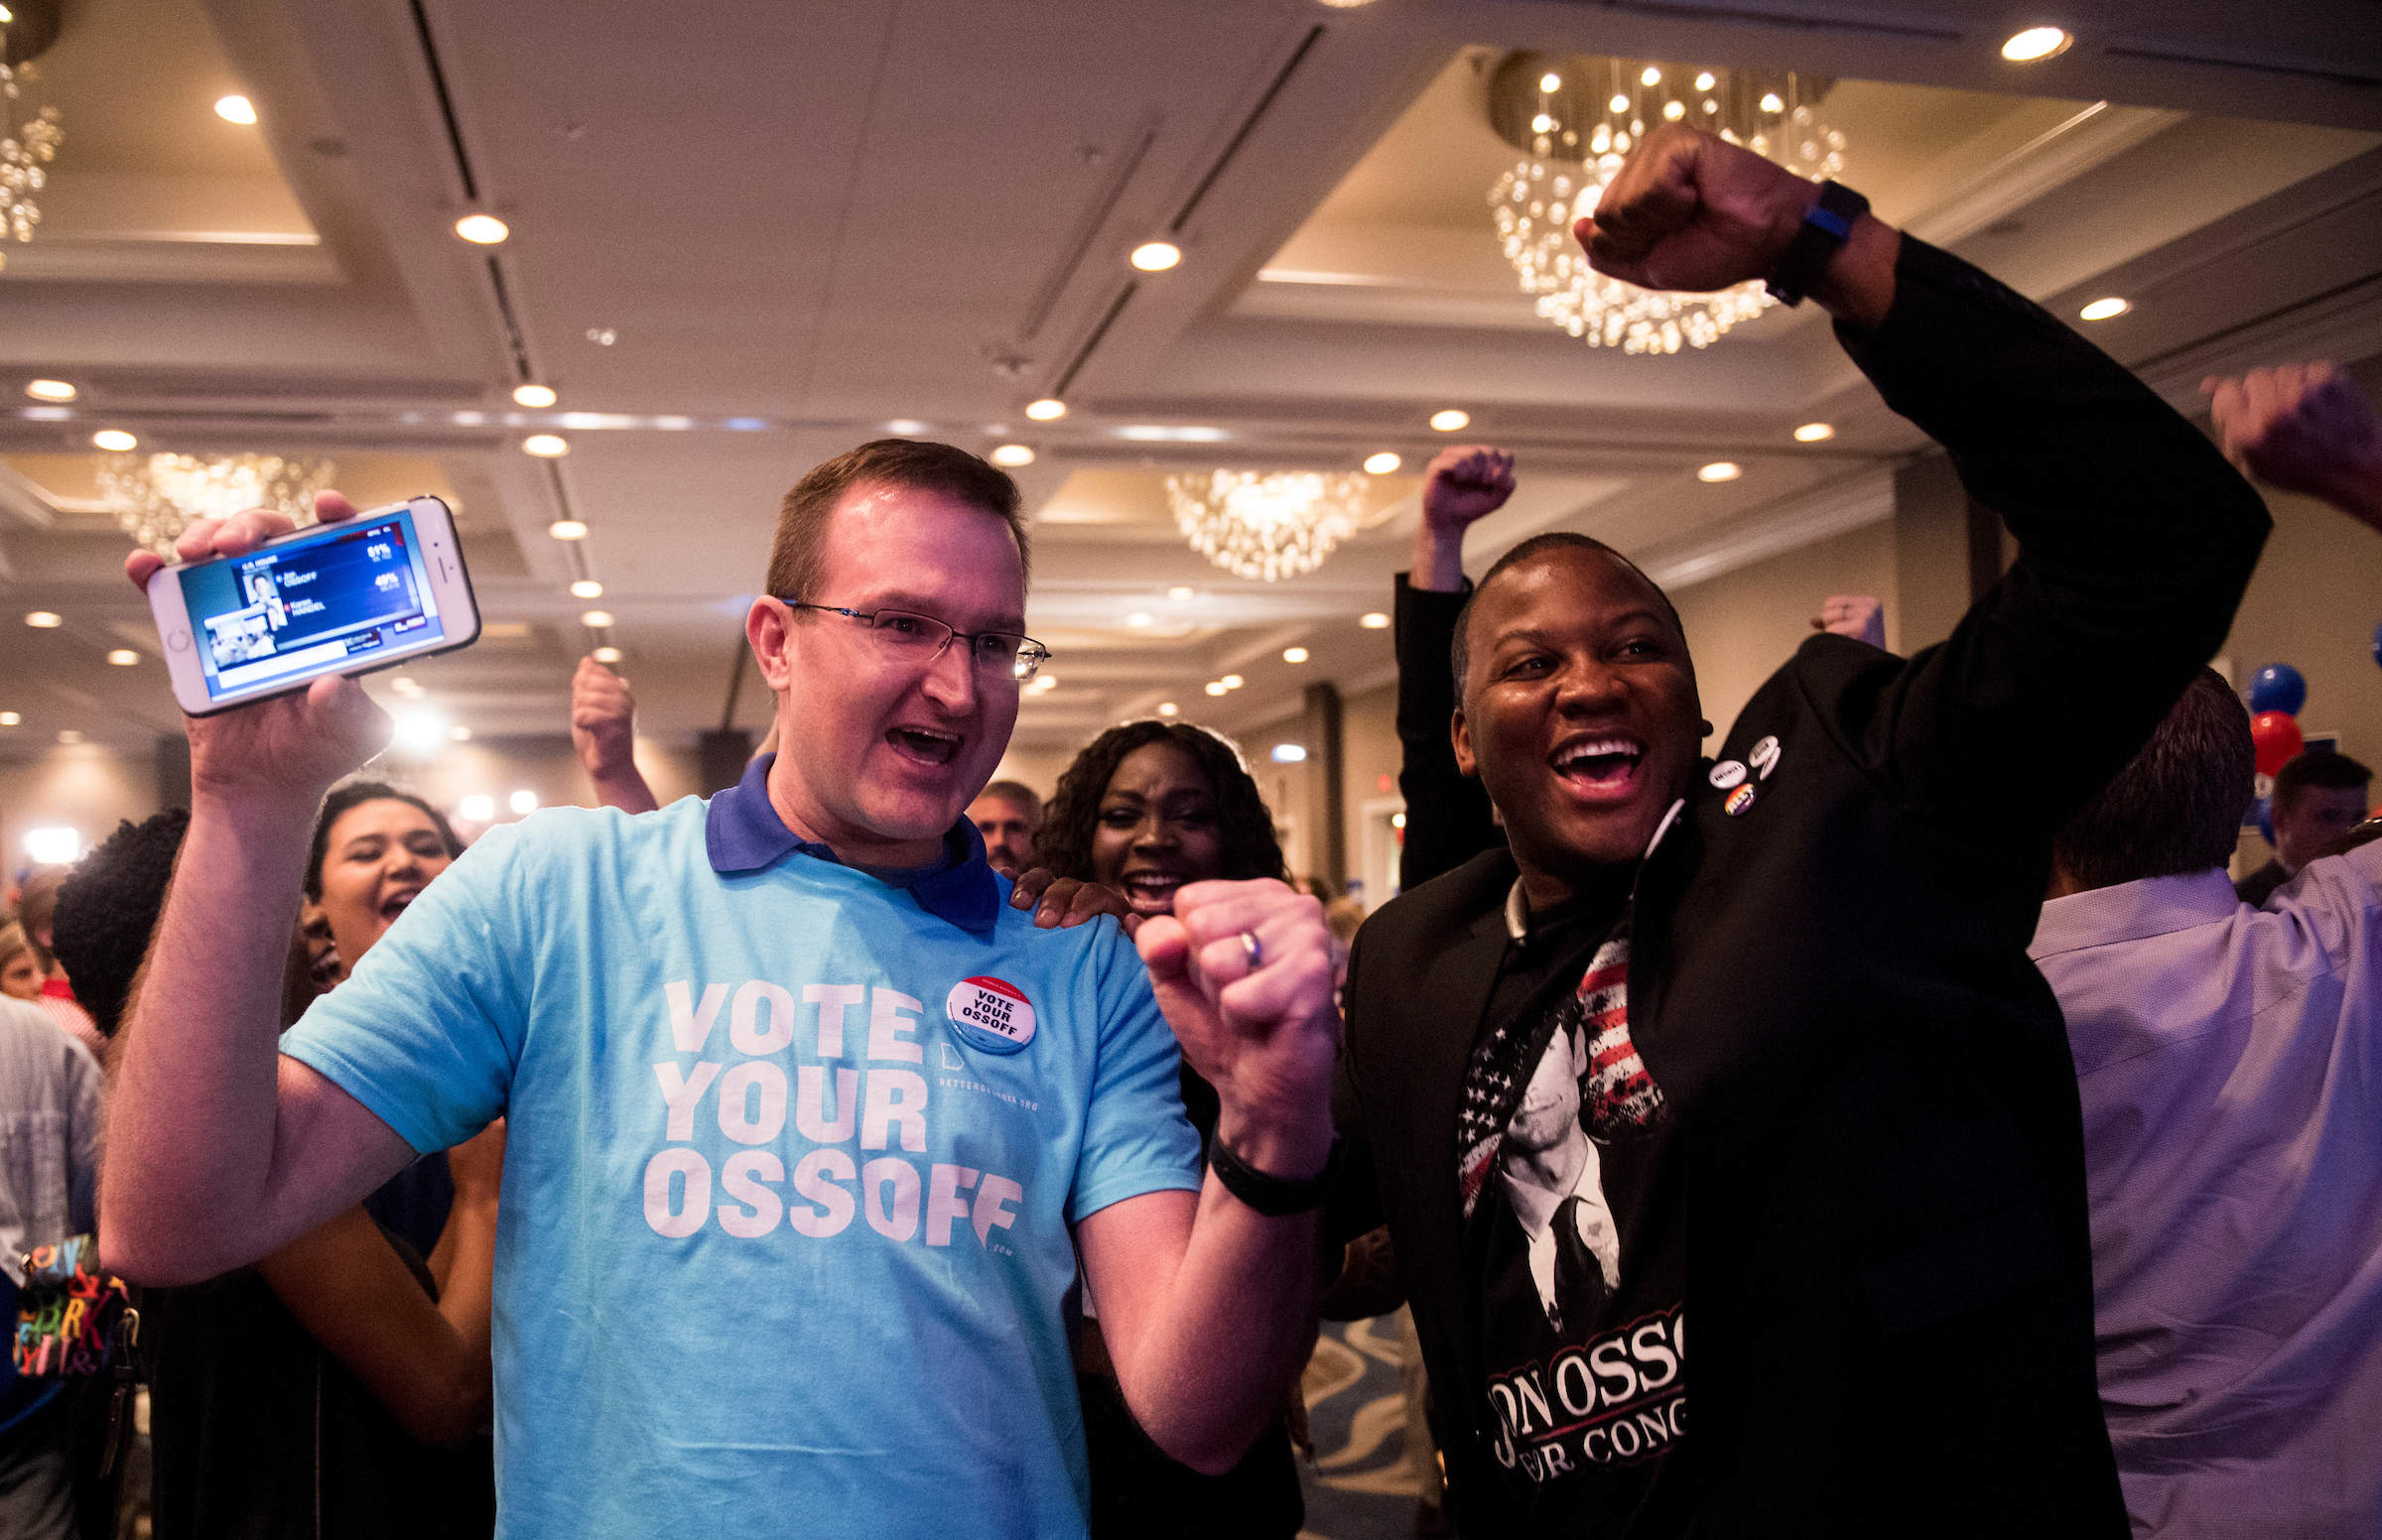 Ossoff supporters cheer early elections results at Ossoff's election night watch party in Atlanta, Ga., on special election day. (Bill Clark/CQ Roll Call)